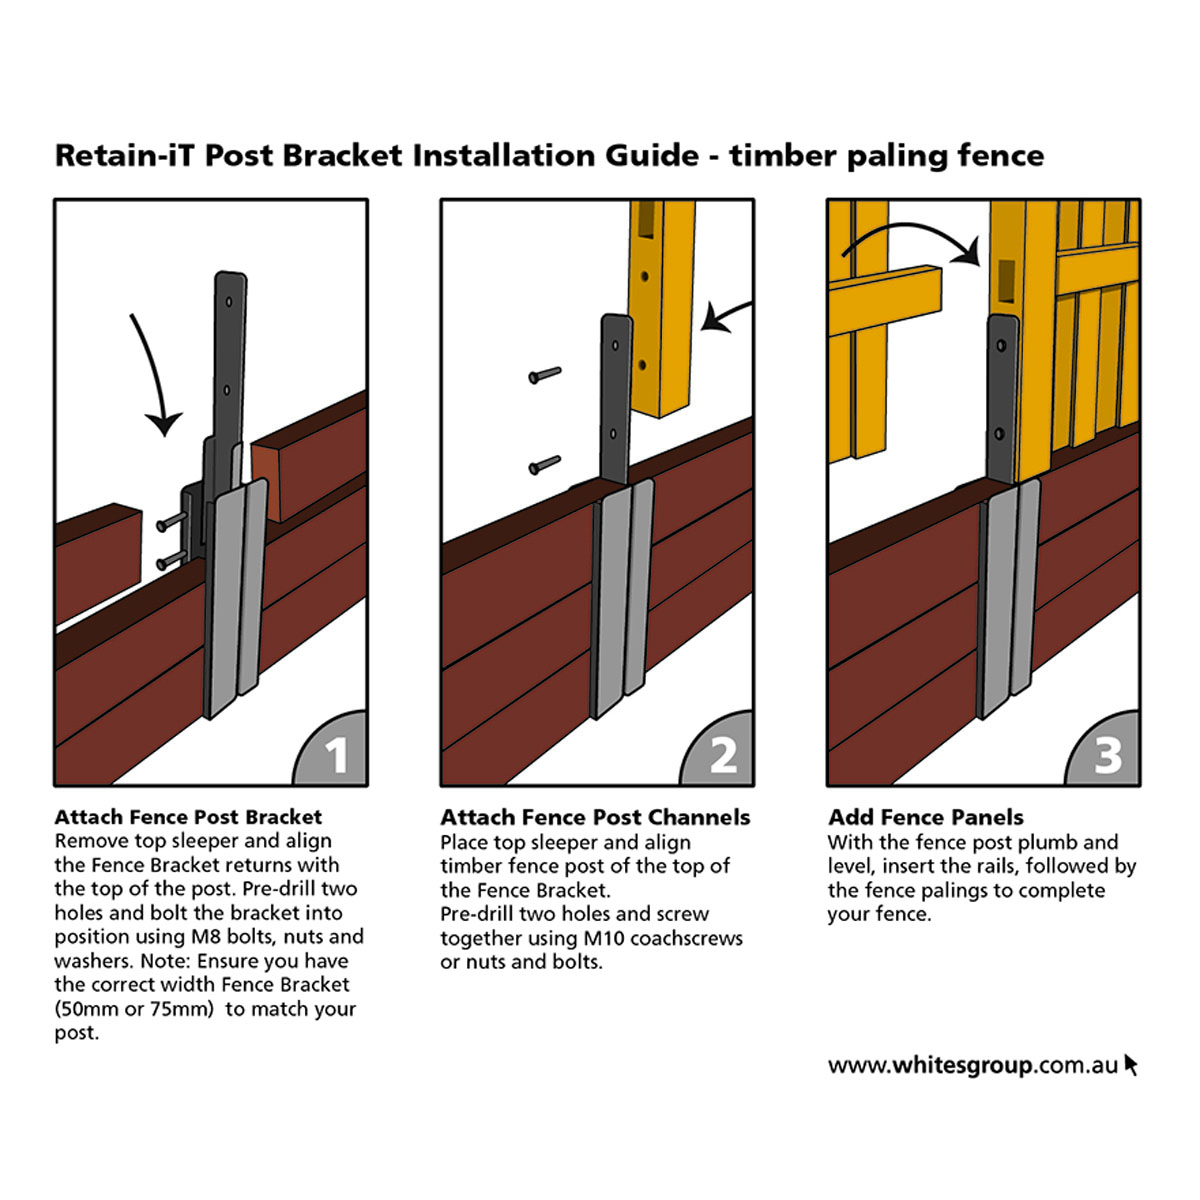 Retain iT fence bracket instructions for timber paling fence